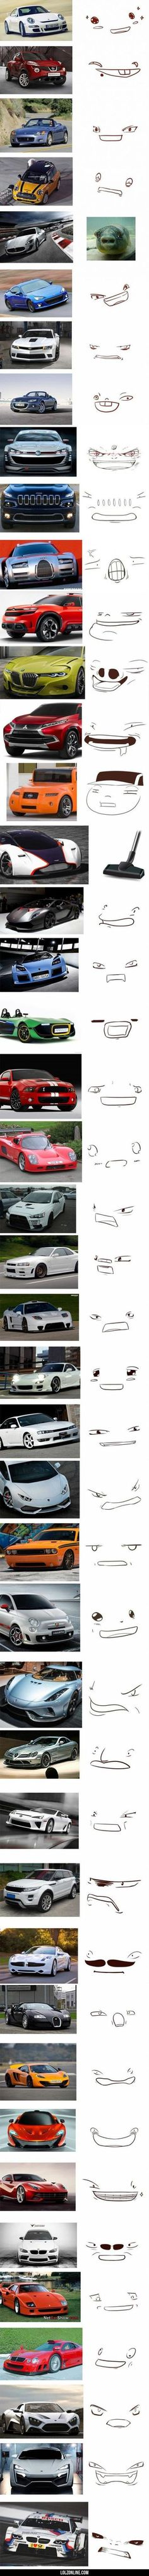 The many faces of cars#funny #lol #lolzonline